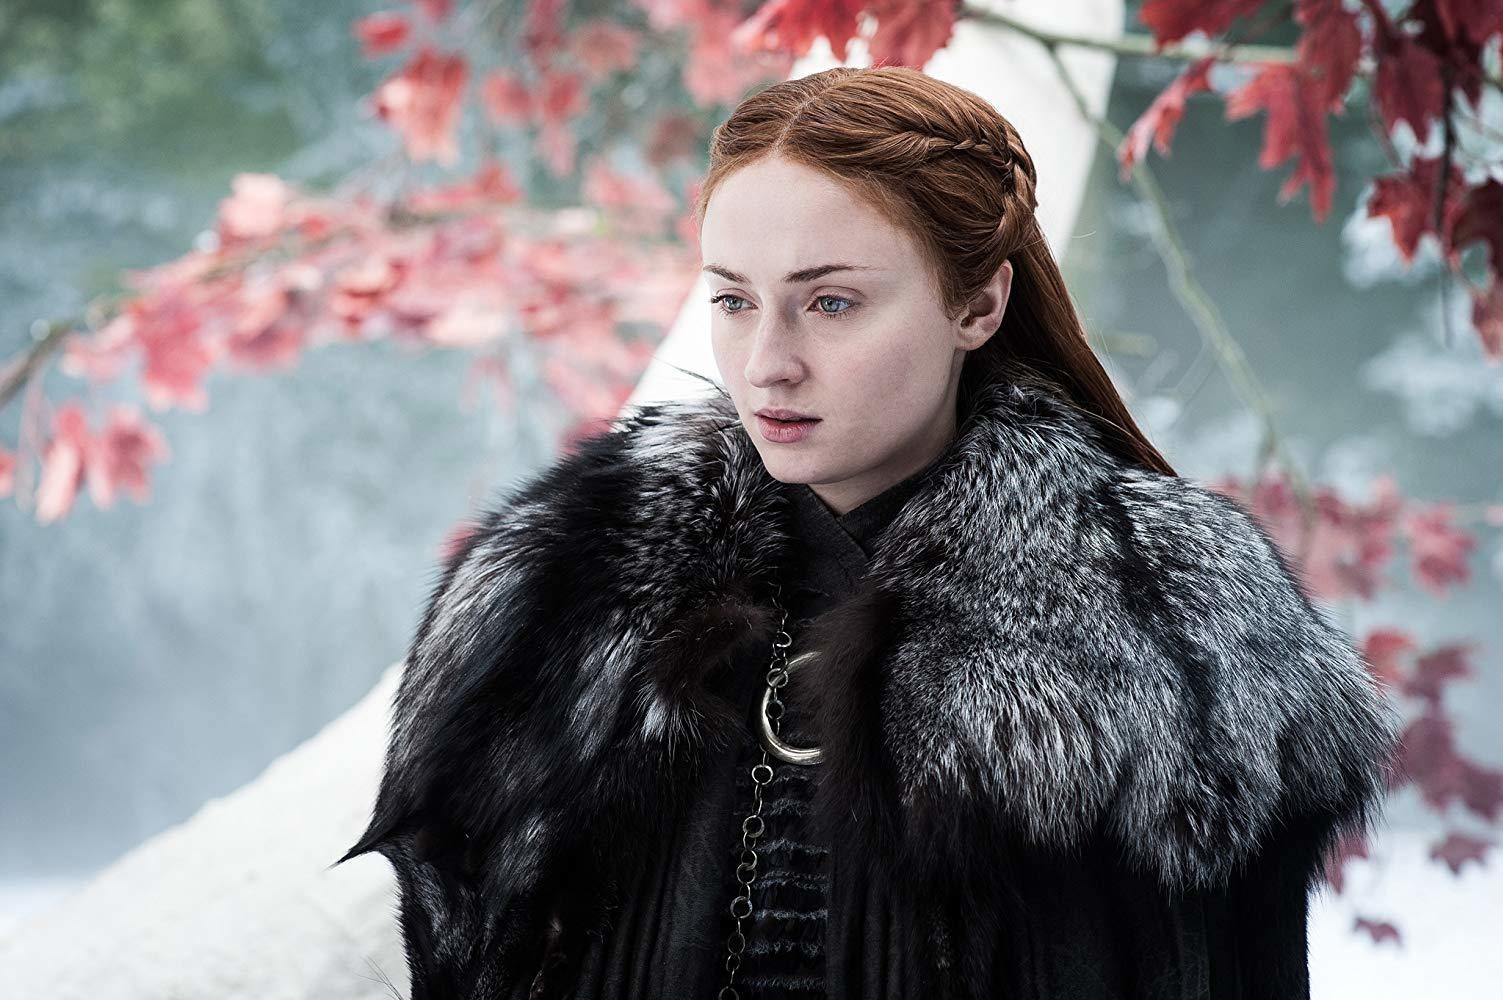 'Game Of Thrones' Season 8 Premiere Recap: 'Thrones' Is Back And Winterfell Is The Place To Be